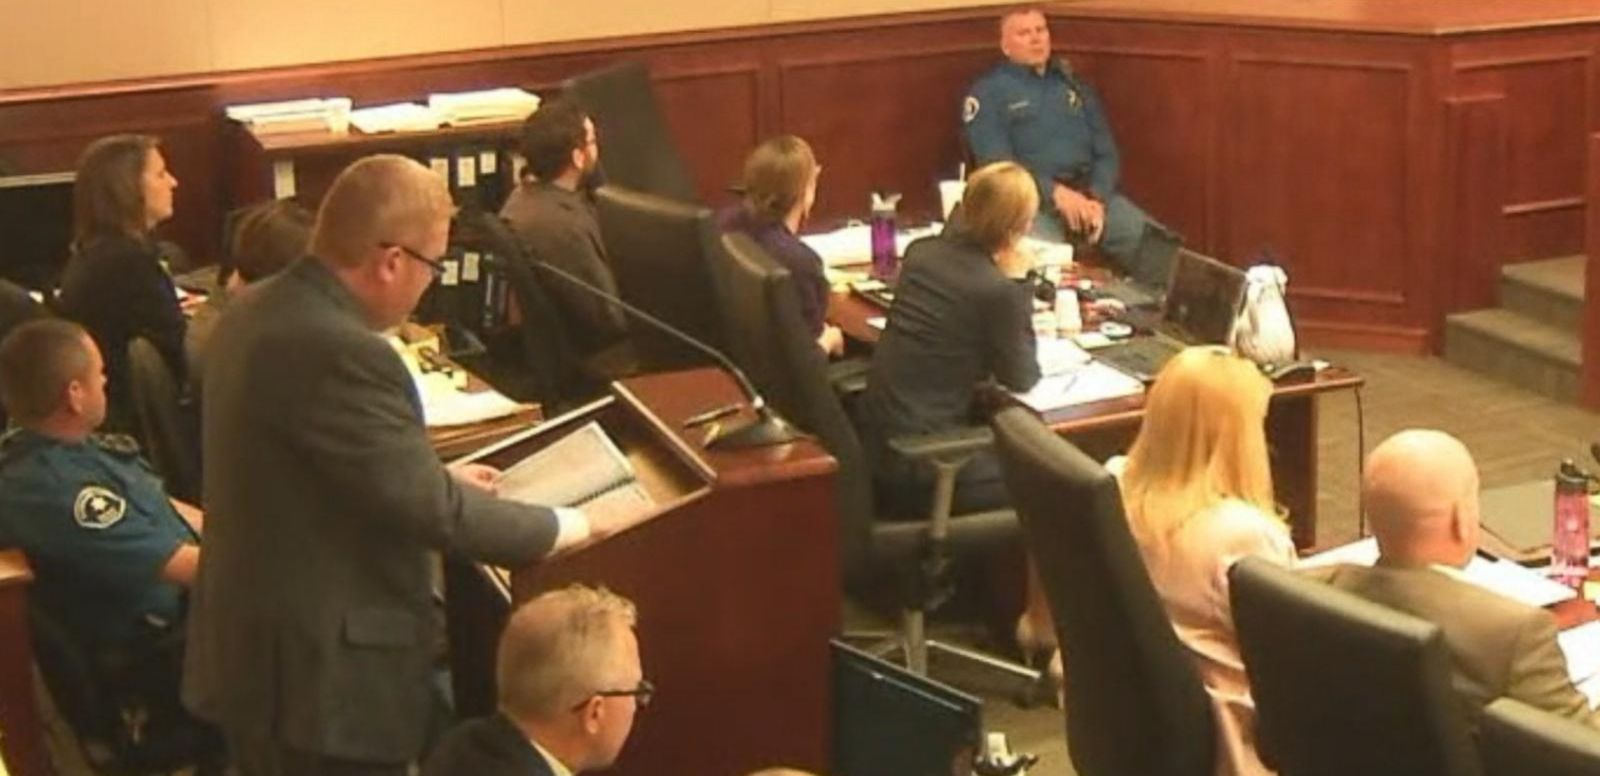 VIDEO: Colorado Movie Theater Gunman's Notebook Reveals 'Obsession to Kill'